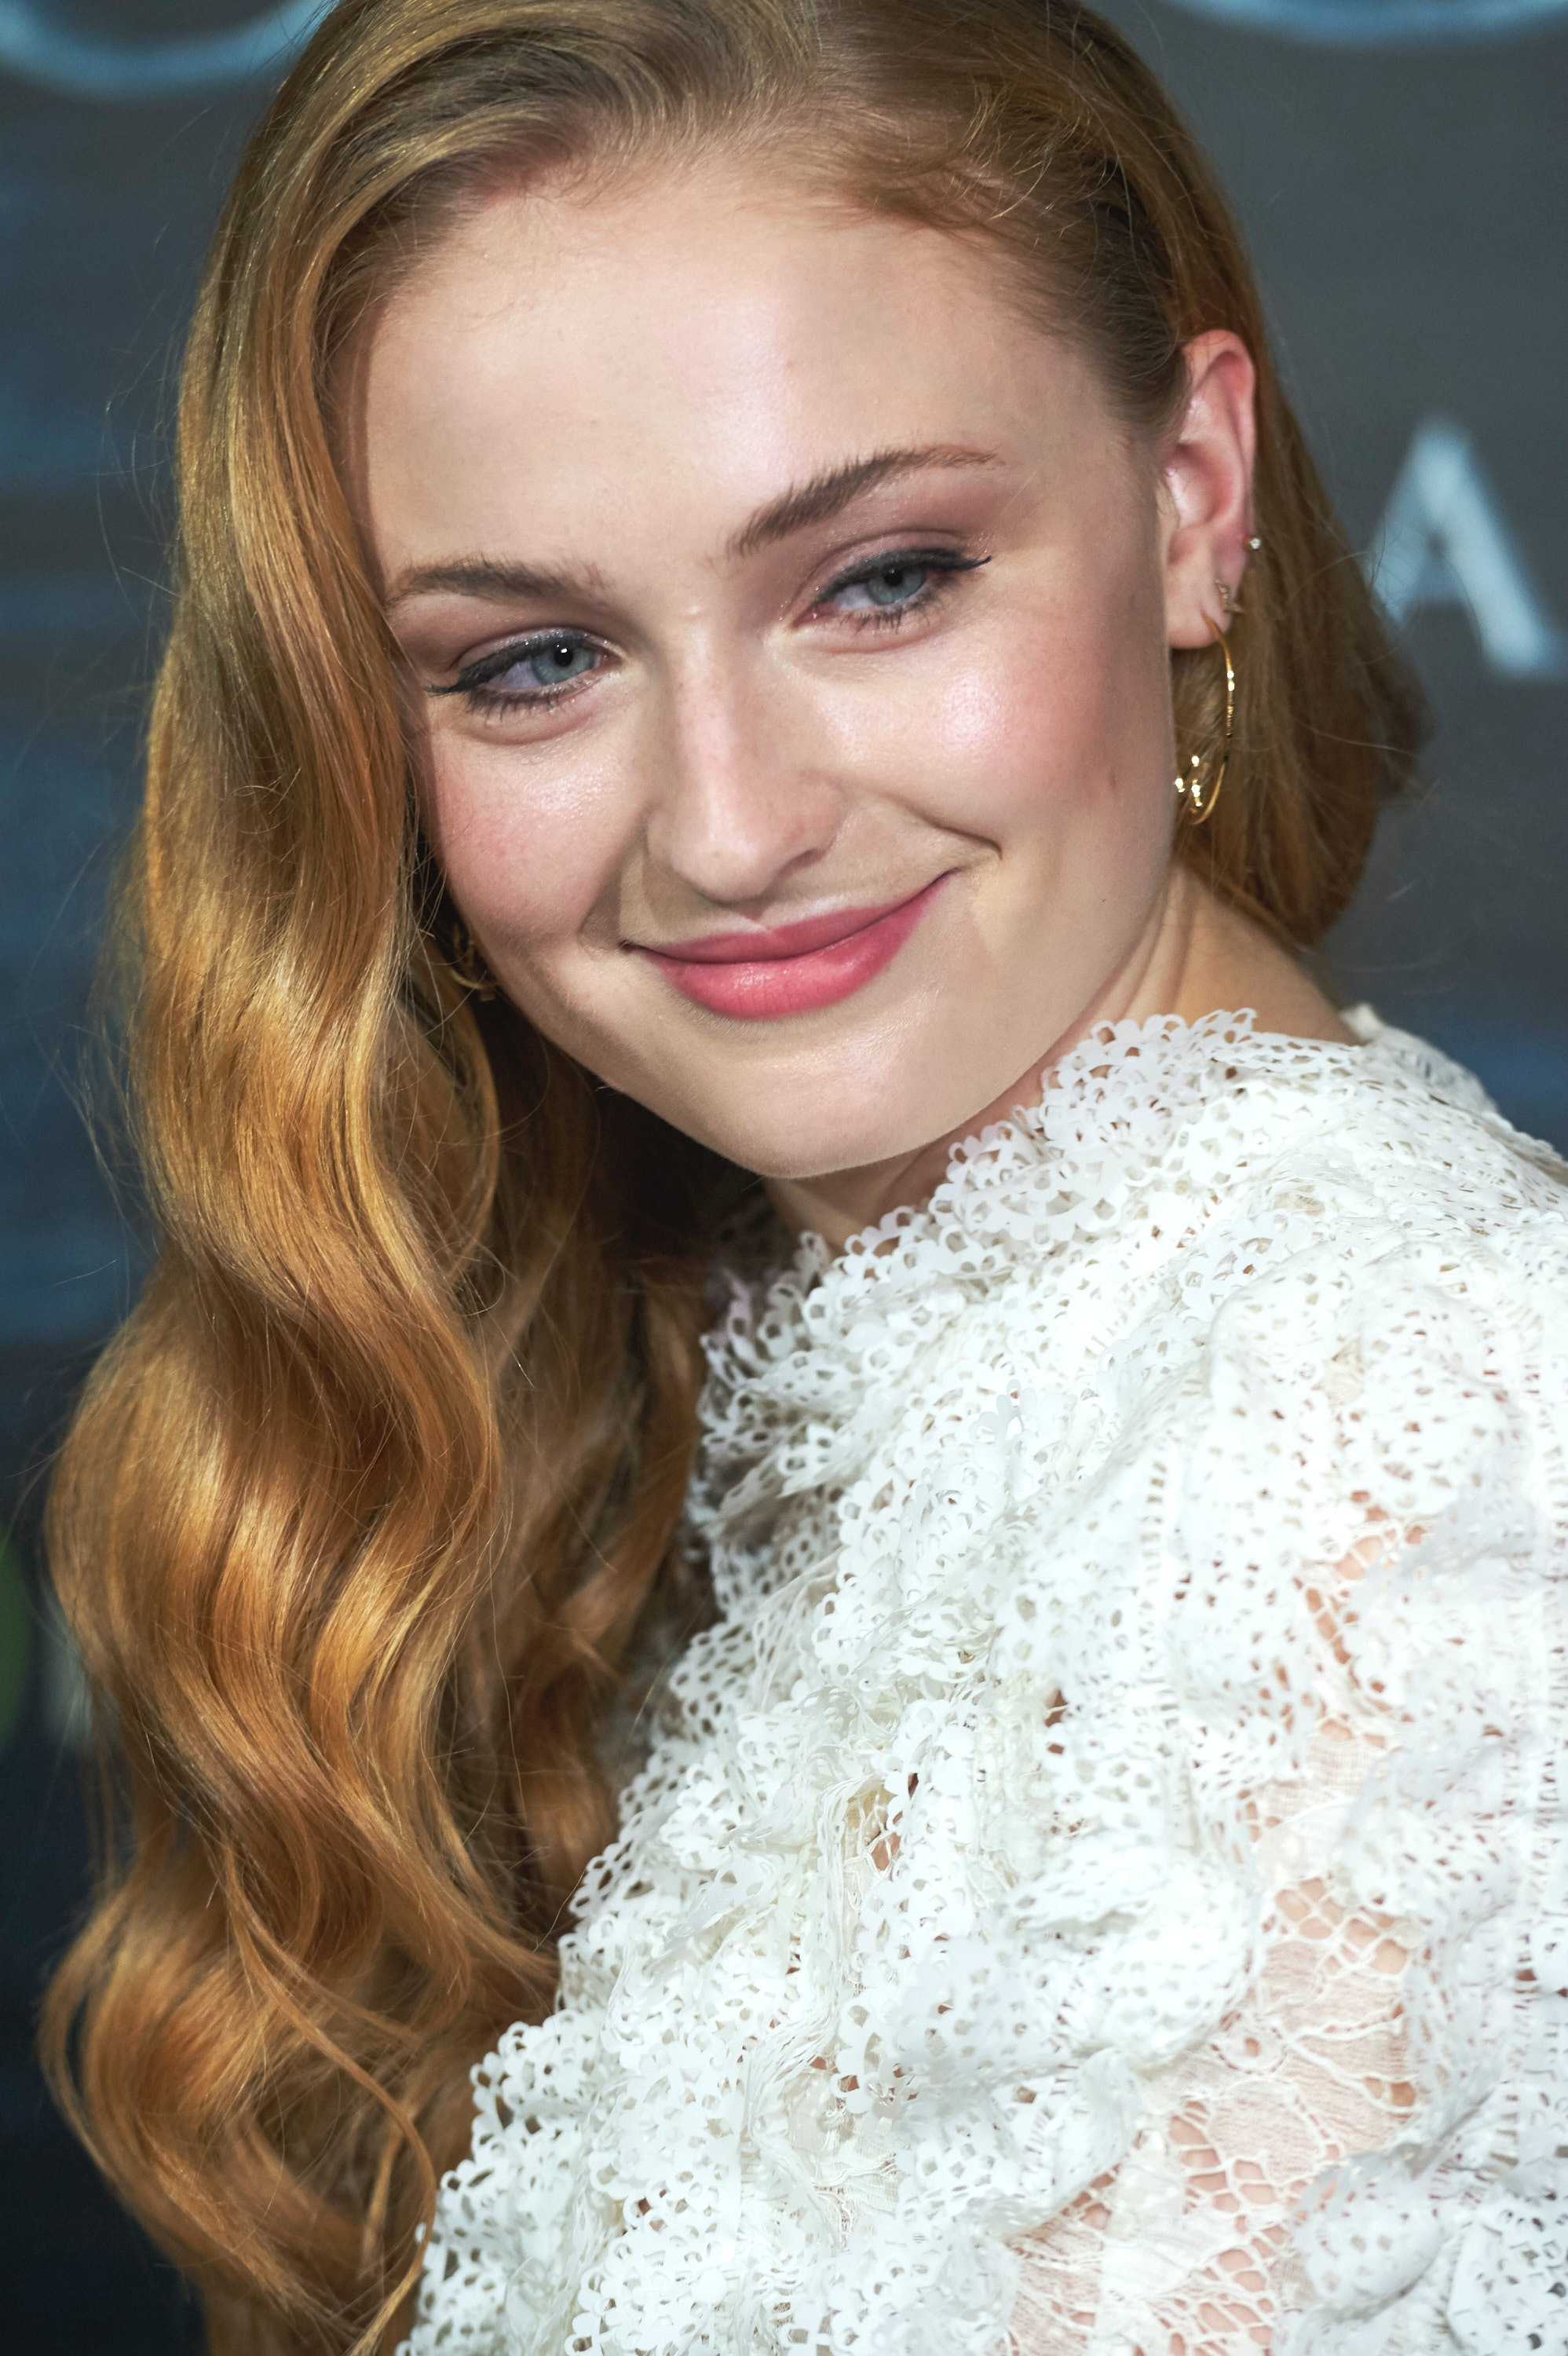 Sophie Turner Red Hair  Wwwpixsharkcom  Images Galleries With A Bite